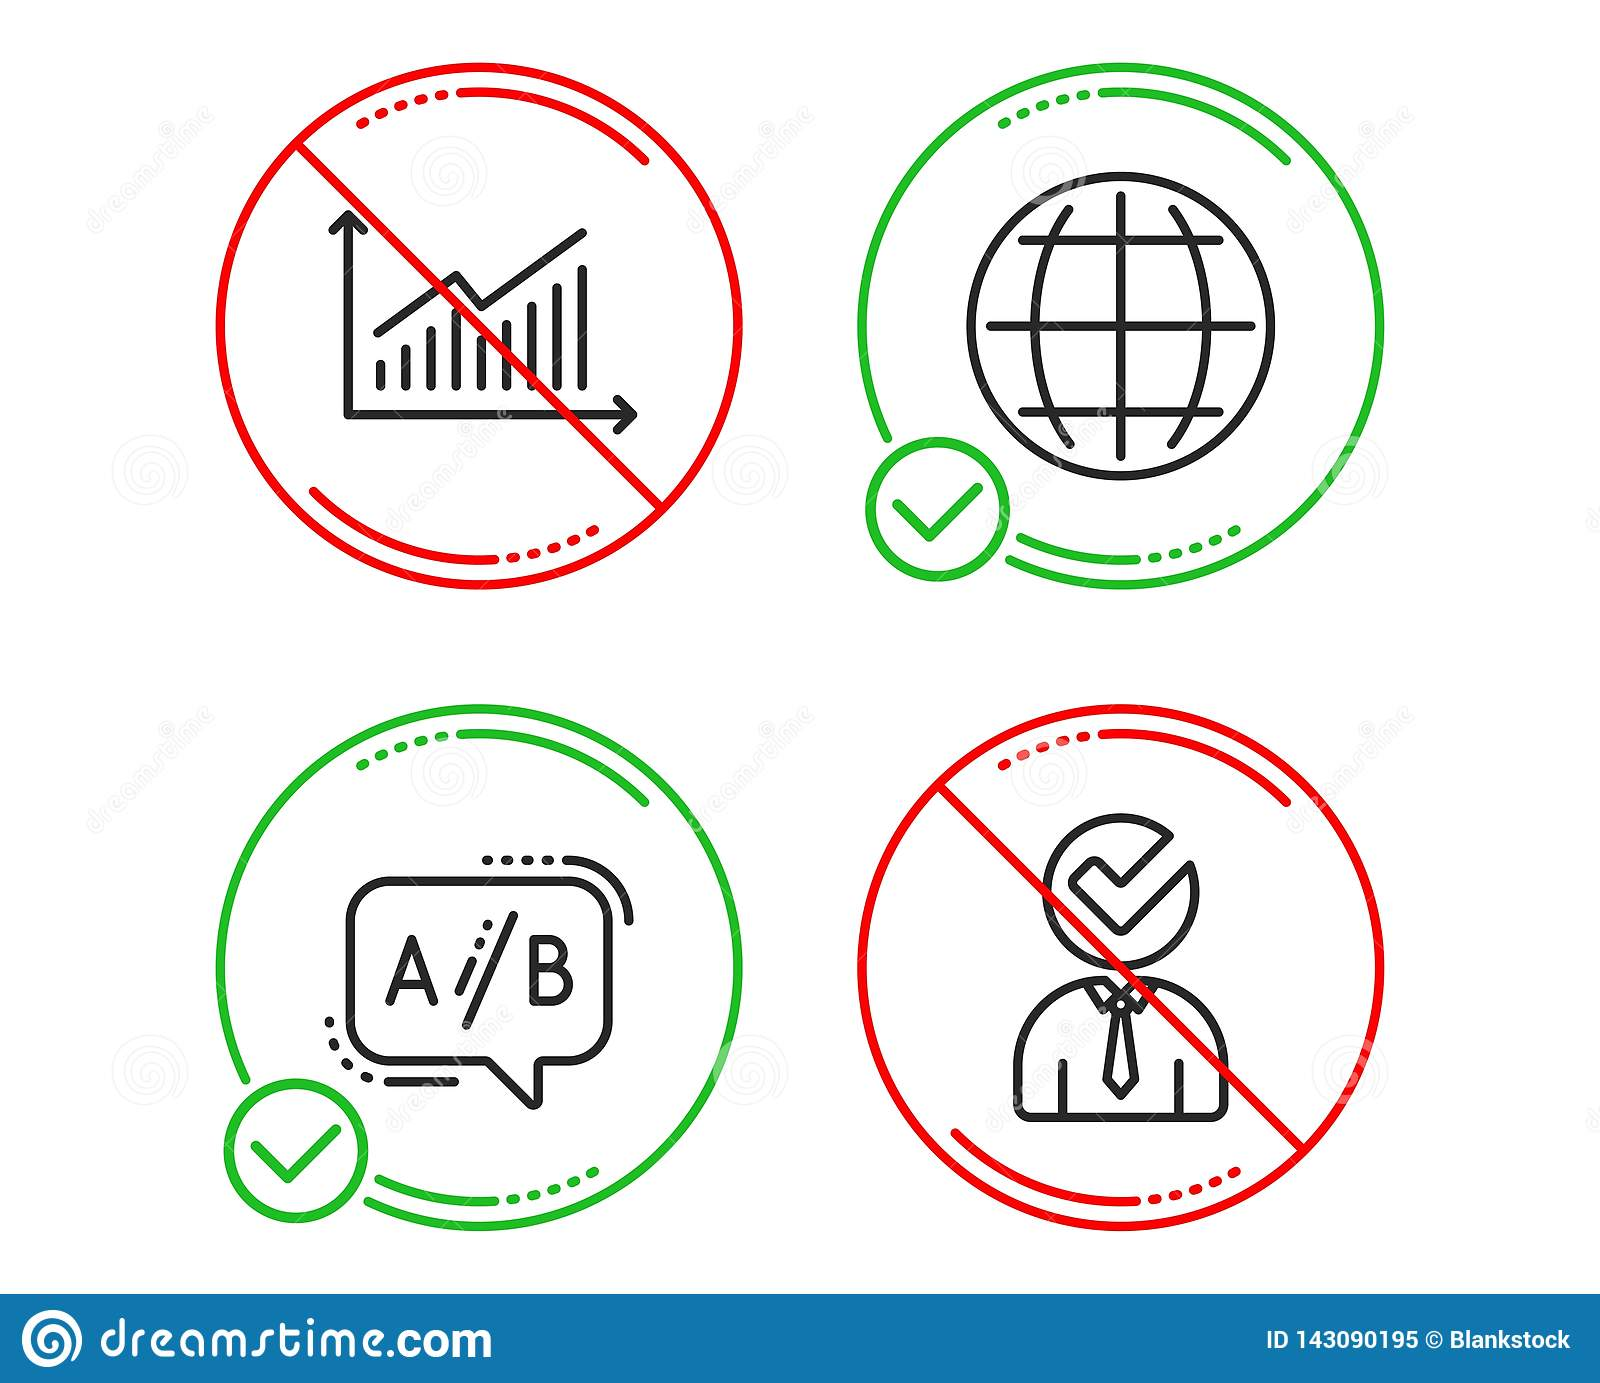 hight resolution of do or stop graph ab testing and globe icons simple set vacancy sign presentation diagram test chat internet world businessman concept business set